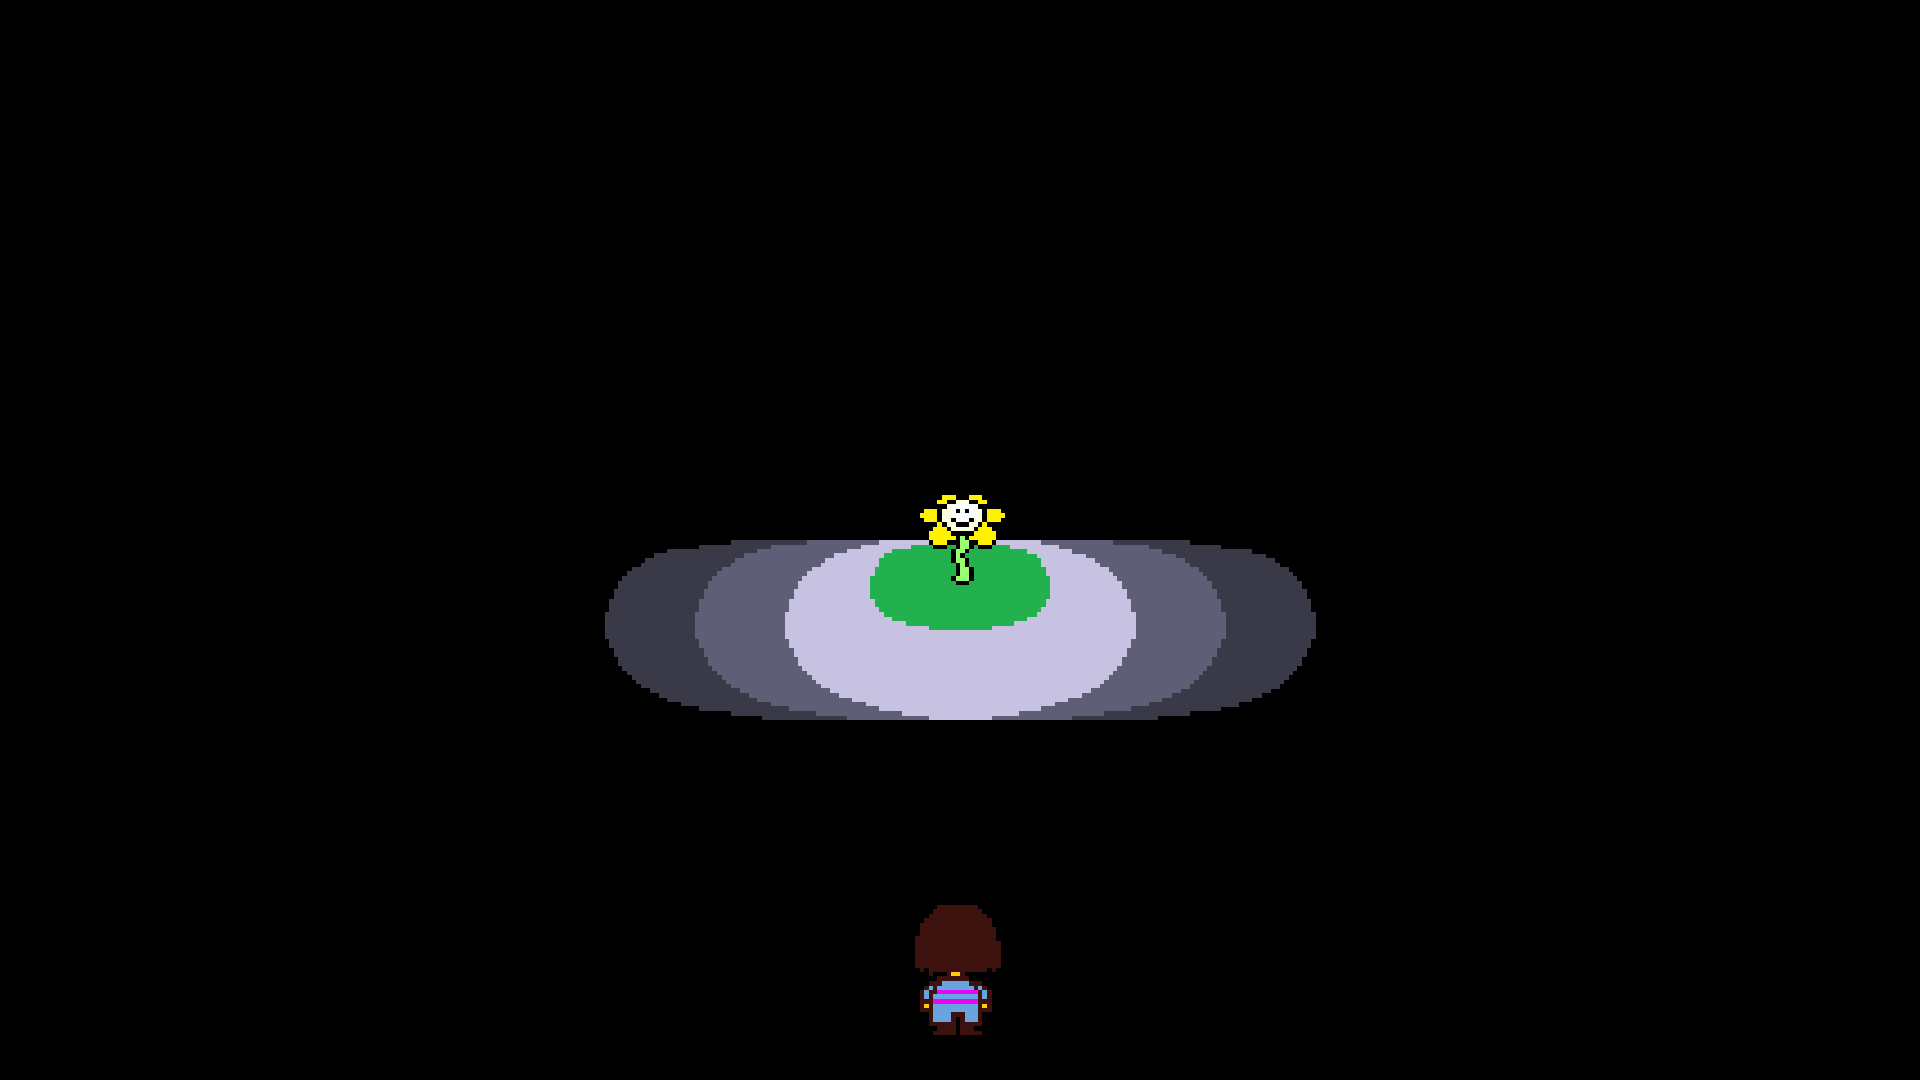 Subject #2: UNDERTALE - The Virtual Diary - Medium